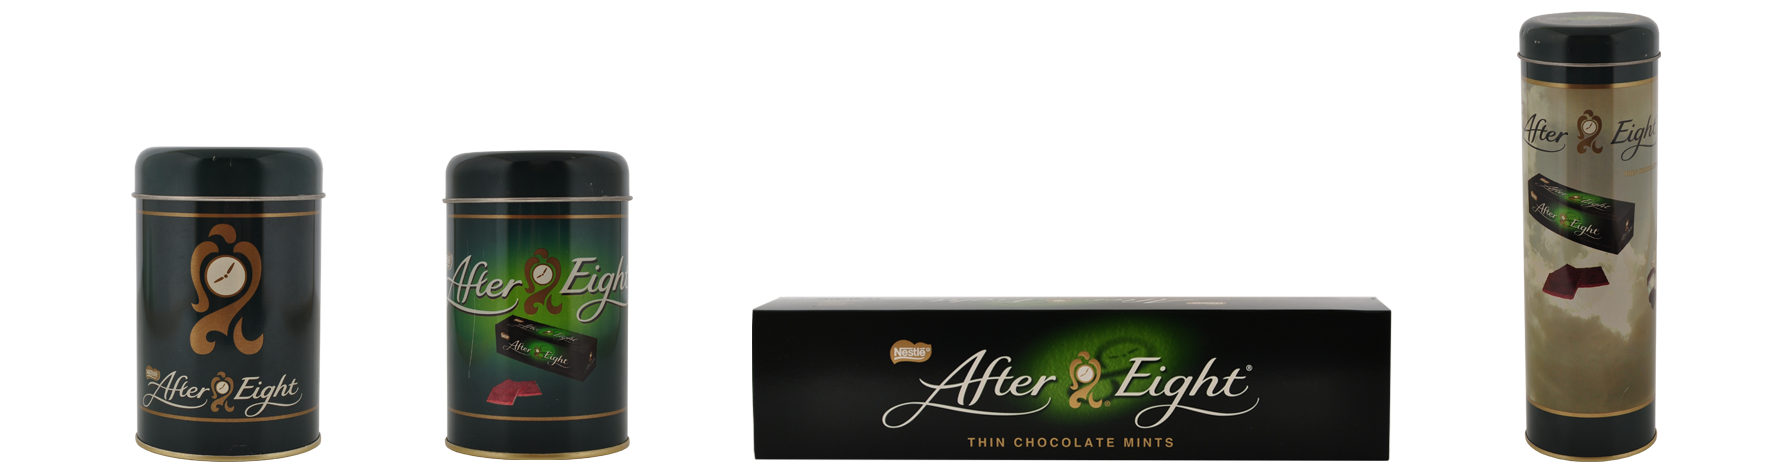 after-eight